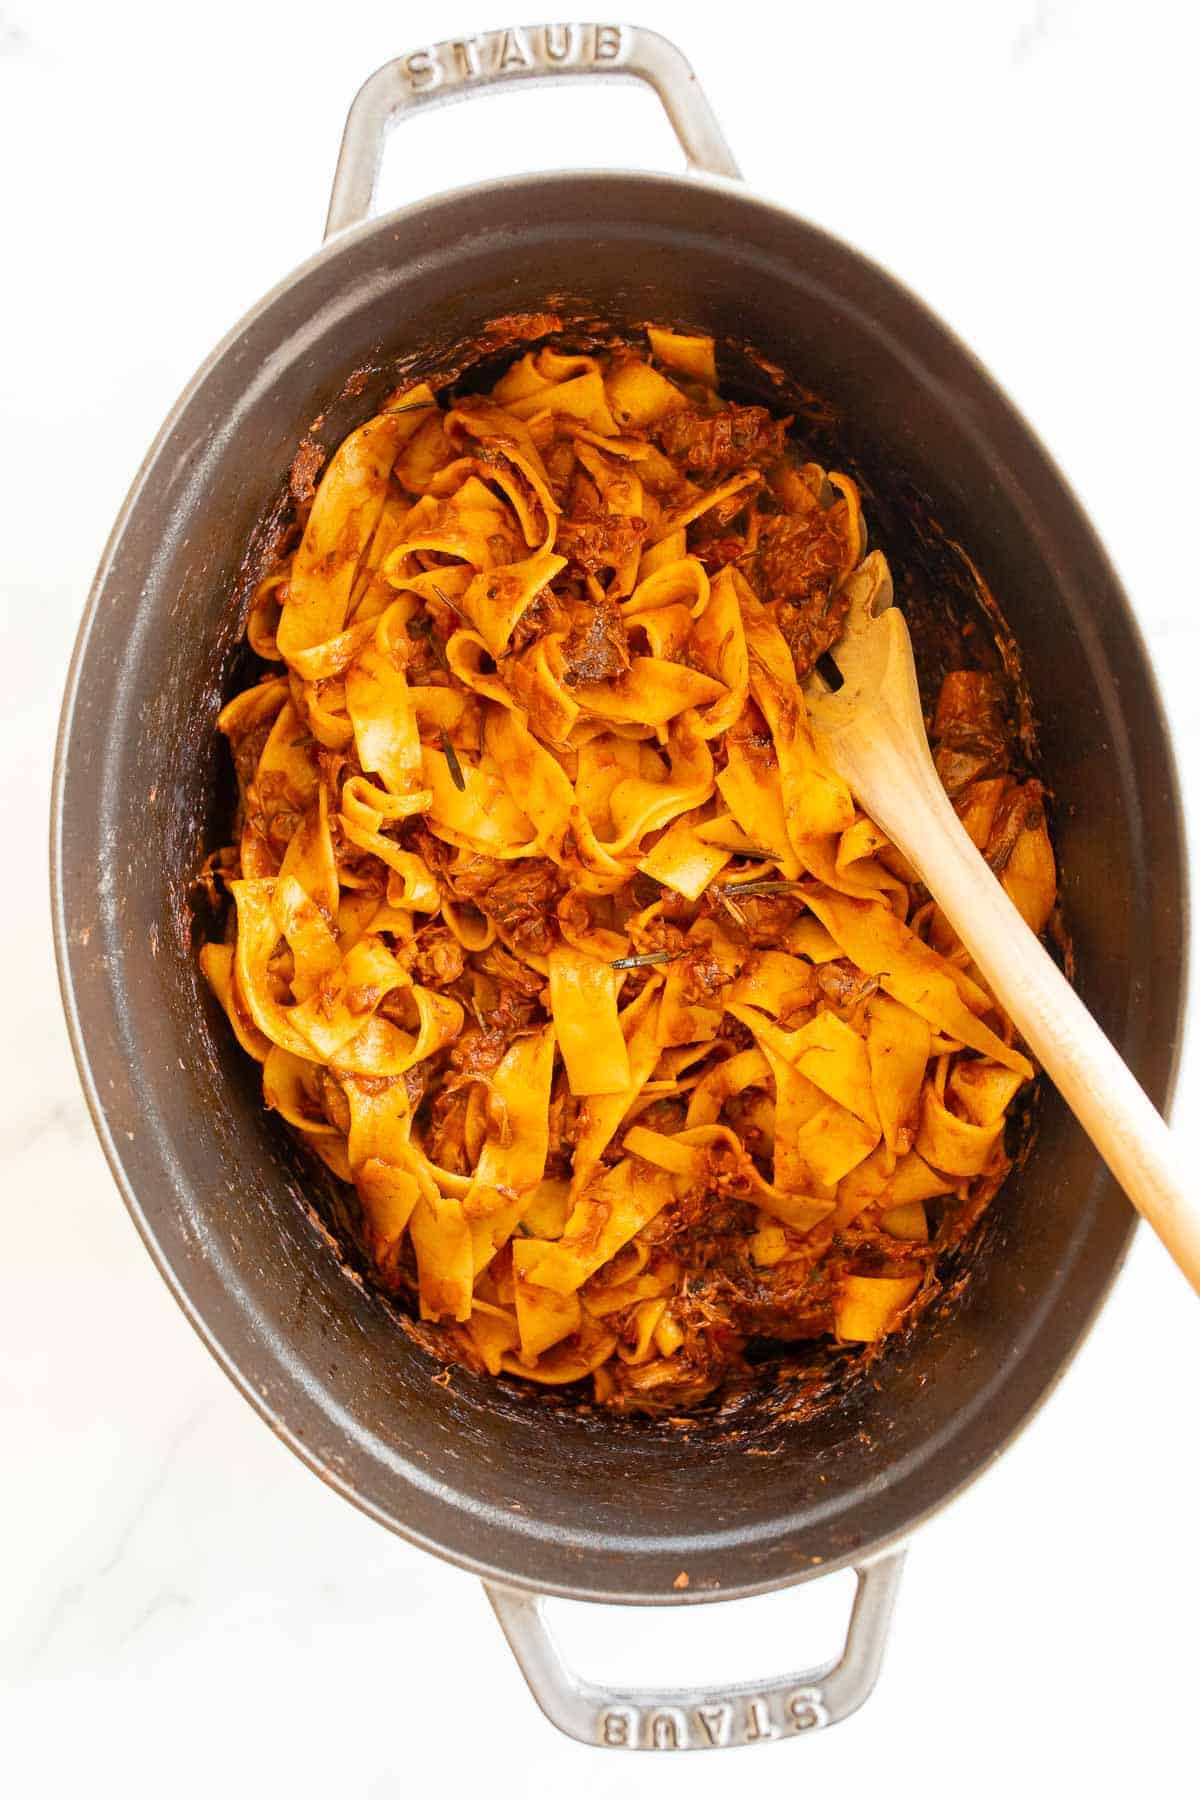 Beef ragu and Pappardelle pasta in a large cast iron pot, wooden spoon to the side.